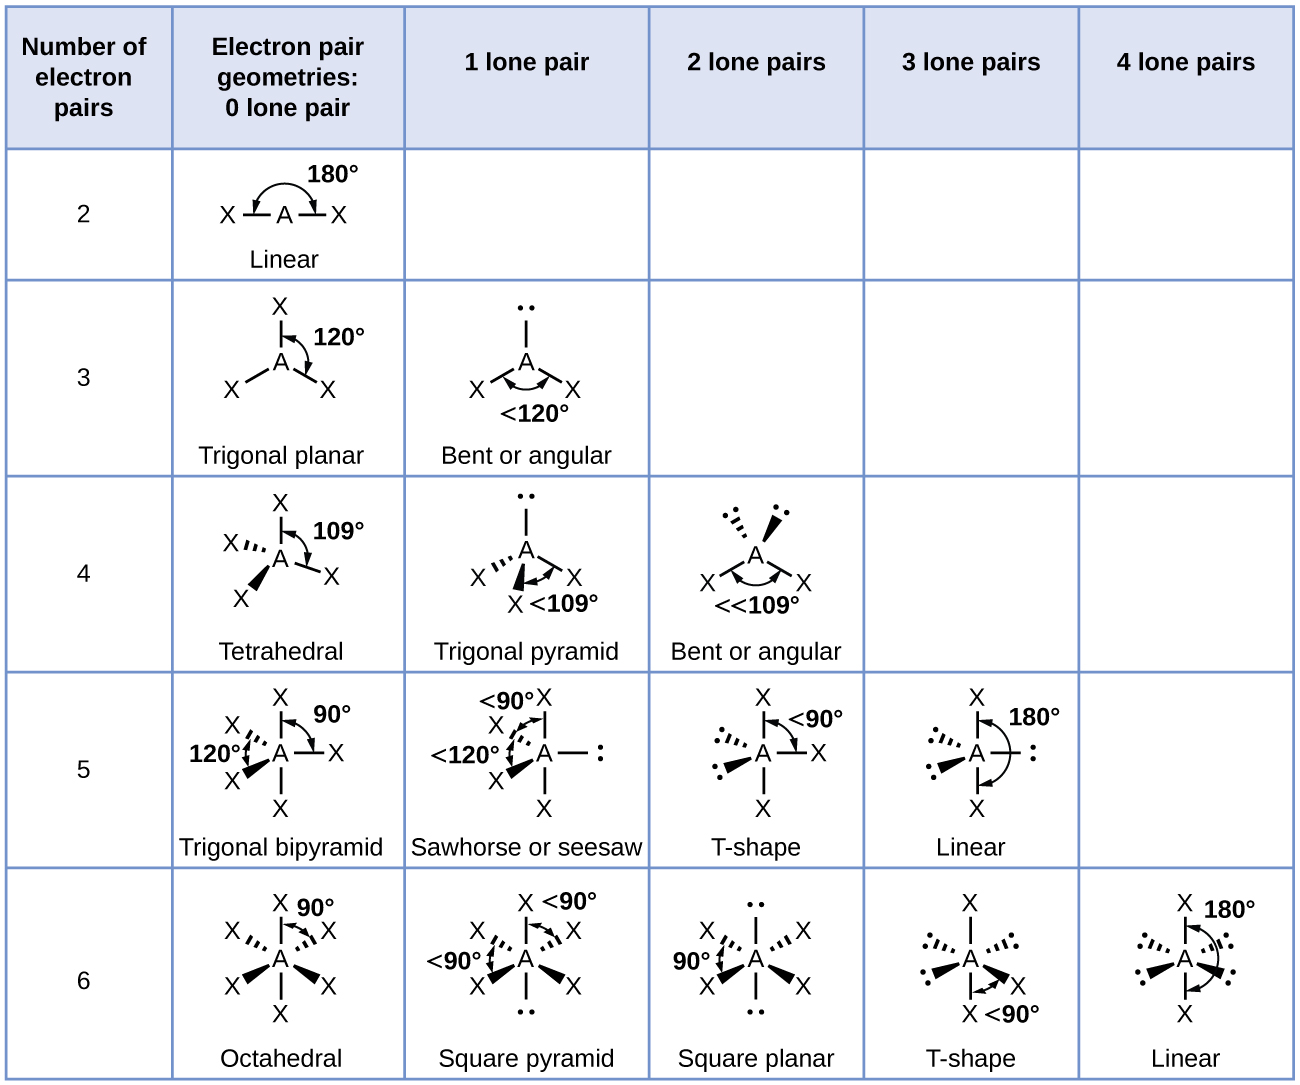 """A table is shown that is comprised of six rows and six columns. The header row reads: """"Number of Electron Pairs,"""" """"Electron pair geometries; 0 lone pair,"""" """"1 lone pair,"""" """"2 lone pairs,"""" """"3 lone pairs,"""" and """"4 lone pairs."""" The first column contains the numbers 2, 3, 4, 5, and 6. The first space in the second column contains a structure in which the letter E is single bonded to the letter X on each side. The angle of the bonds is labeled with a curved, double headed arrow and the value, """"180 degrees."""" The structure is labeled, """"Linear."""" The second space in the second column contains a structure in which the letter E is single bonded to the letter X on three sides. The angle between the bonds is labeled with a curved, double headed arrow and the value, """"120 degrees."""" The structure is labeled, """"Trigonal planar."""" The third space in the second column contains a structure in which the letter E is single bonded to the letter X four times. The angle between the bonds is labeled with a curved, double headed arrow and the value, """"109 degrees."""" The structure is labeled, """"Tetrahedral."""" The fourth space in the second column contains a structure in which the letter E is single bonded to the letter X on five sides. The angle between the bonds is labeled with a curved, double headed arrow and the values """"90 and 120 degrees."""" The structure is labeled, """"Trigonal bipyramid."""" The fifth space in the second column contains a structure in which the letter E is single bonded to the letter X on six sides. The angle between the bonds is labeled with a curved, double headed arrow and the value, """"90 degrees."""" The structure is labeled, """"Octahedral."""" The first space in the third column is empty while the second contains a structure in which the letter E is single bonded to the letter X on each side and has a lone pair of electrons. The angle between the bonds is labeled with a curved, double headed arrow and the value, """"less than 120 degrees."""" The structure is labeled, """"Bent or angular."""" The thir"""